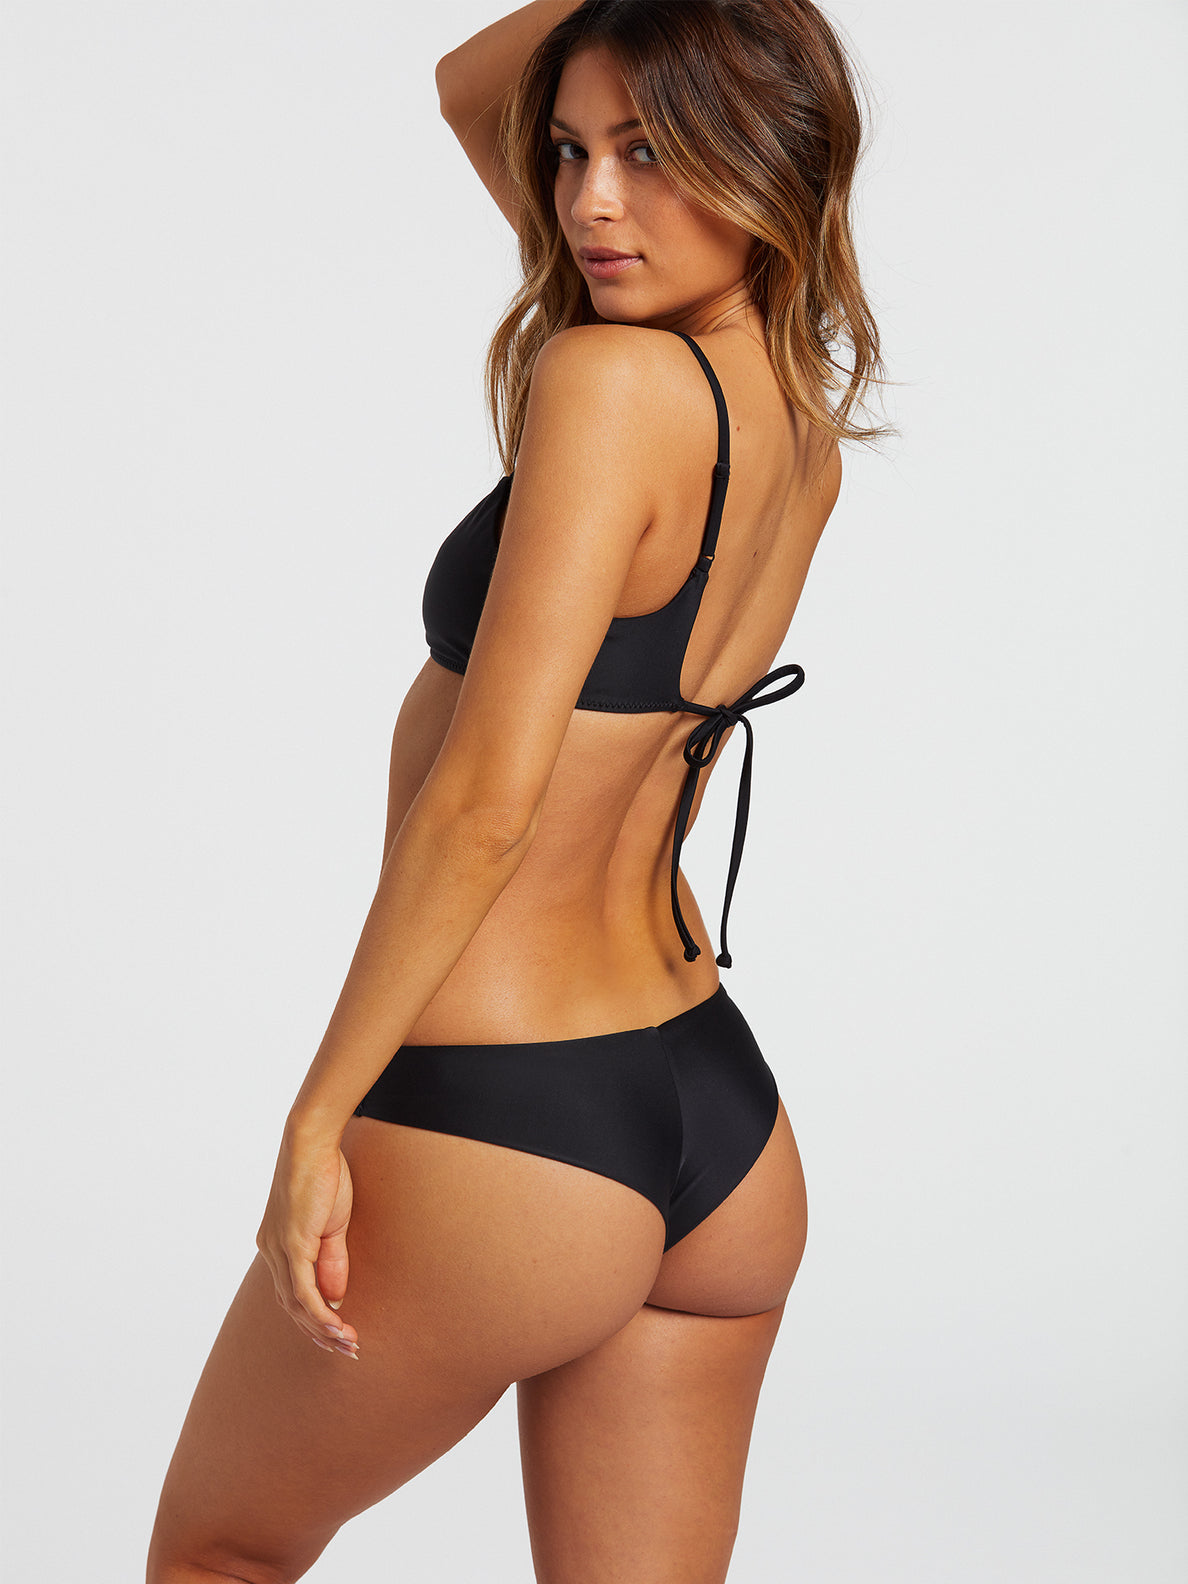 Simply Solid Cheekini Bottom - Black (O2141900_BLK) [2]